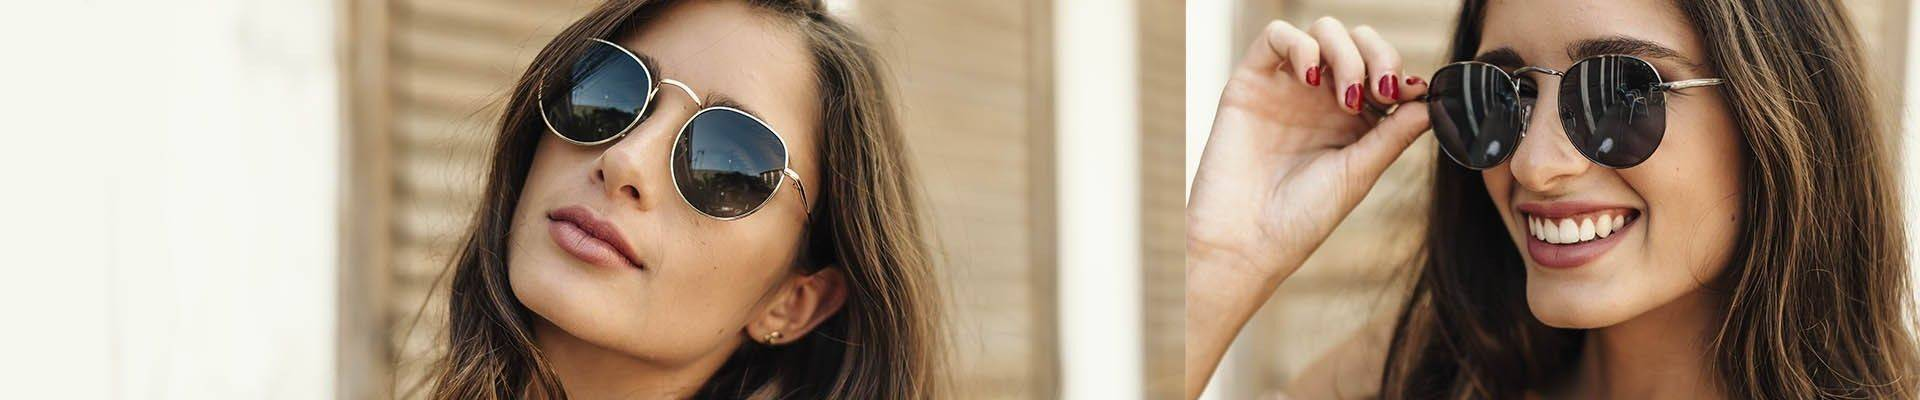 Lunettes de soleil rondes - Charly Therapy -